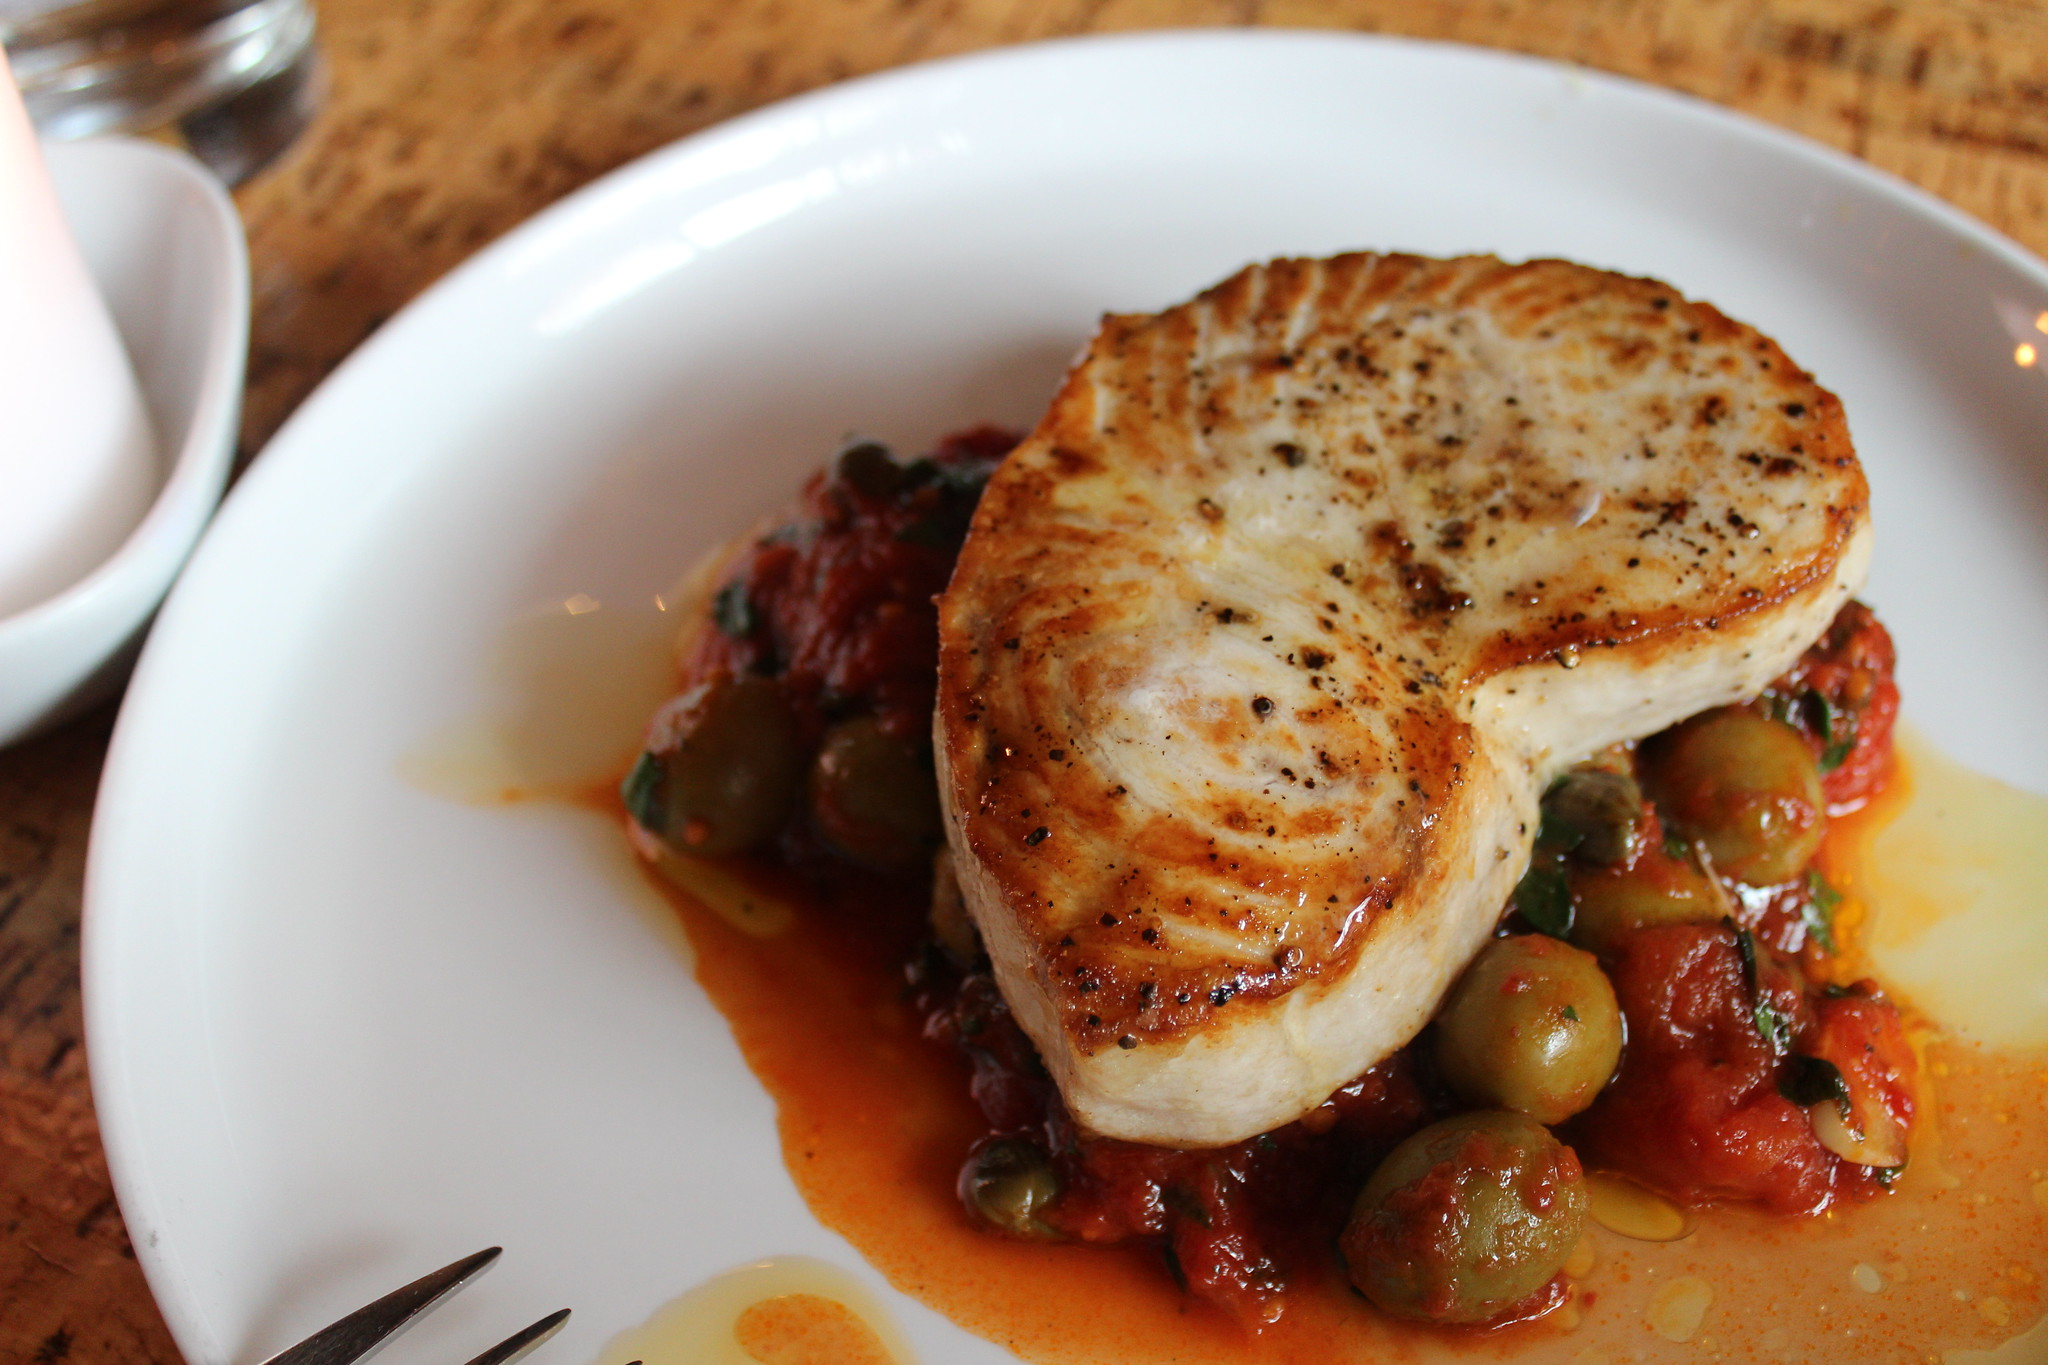 No Reservations New Jersey - Fresh Grilled Atlantic Swordfish - photo by Foodista under CC BY 2.0